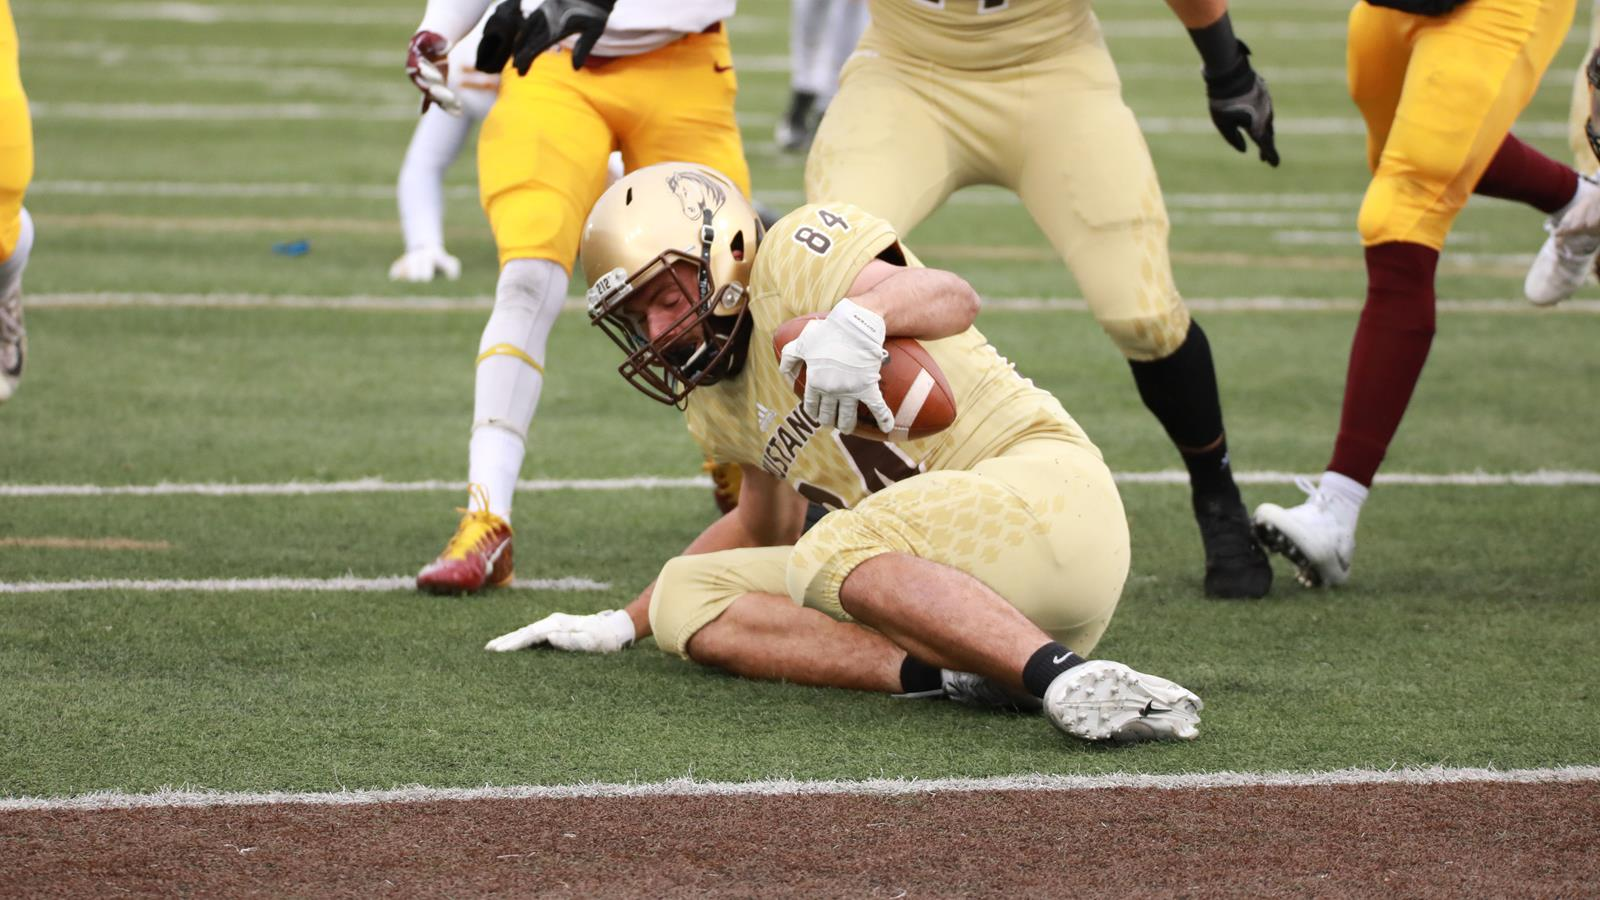 Dakota Jaeschke Football Smsu Athletics